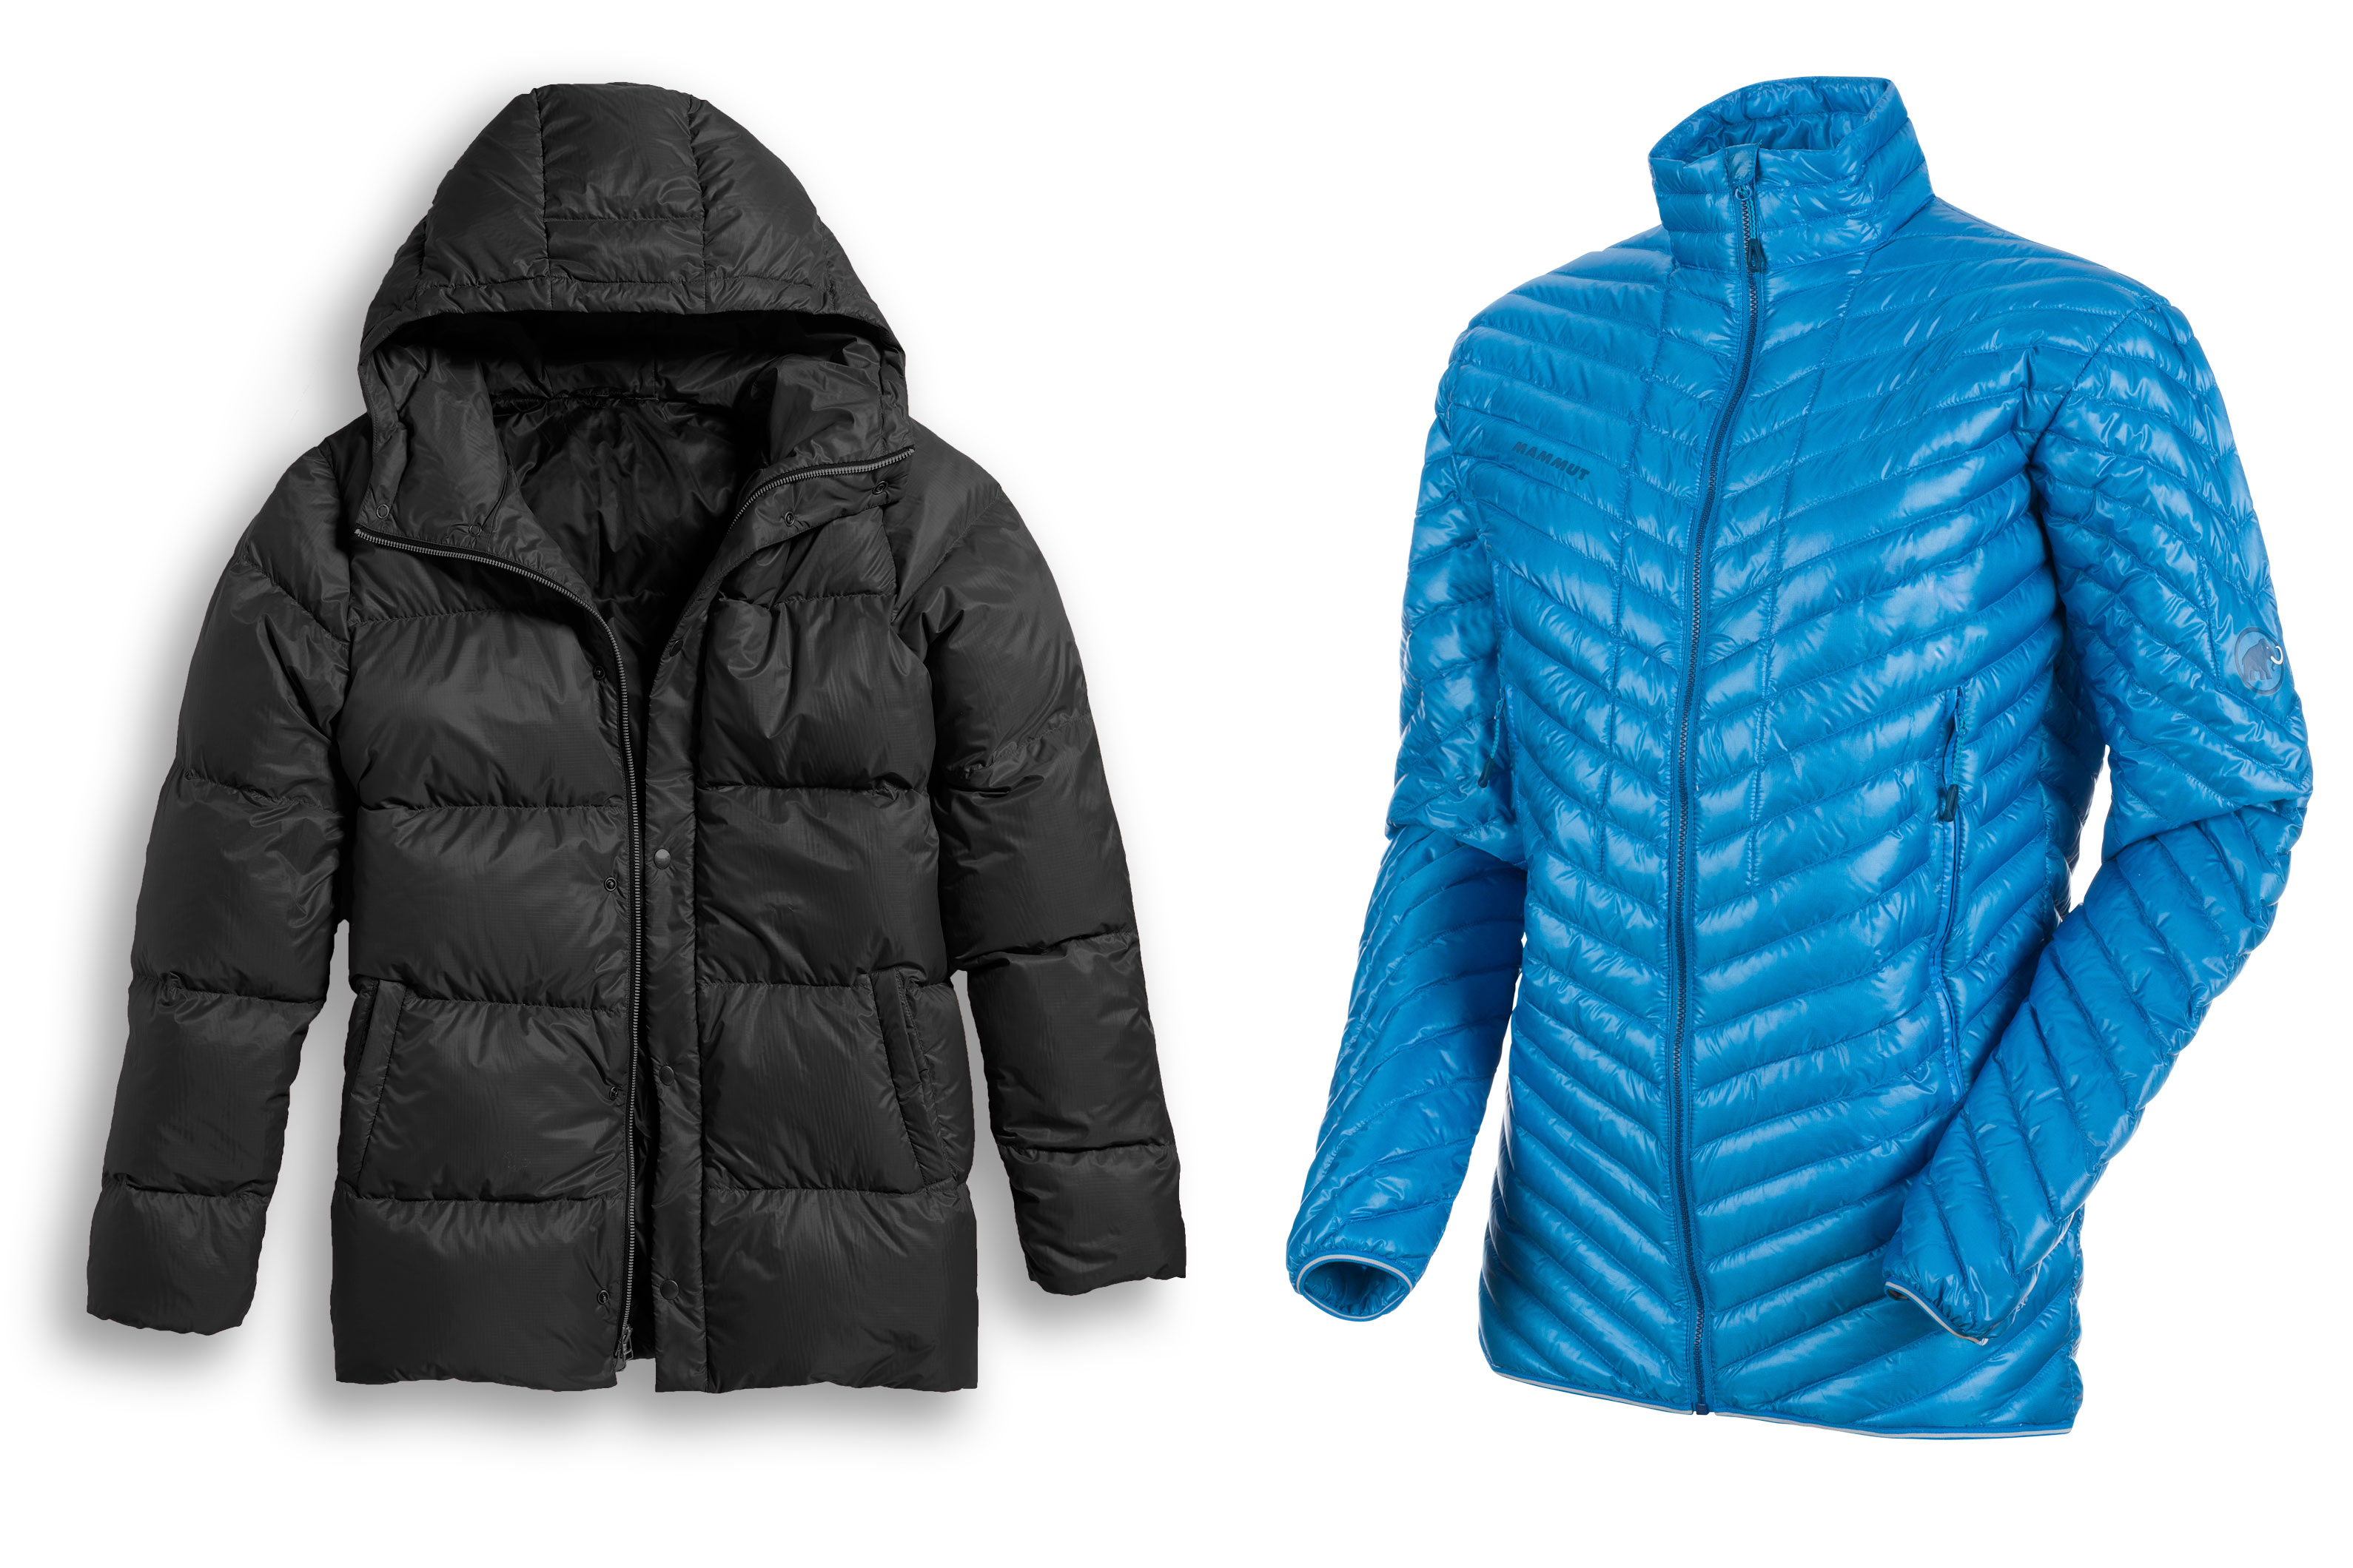 Cotopaxi Rayo Mammut Broad Peak puffy jacket